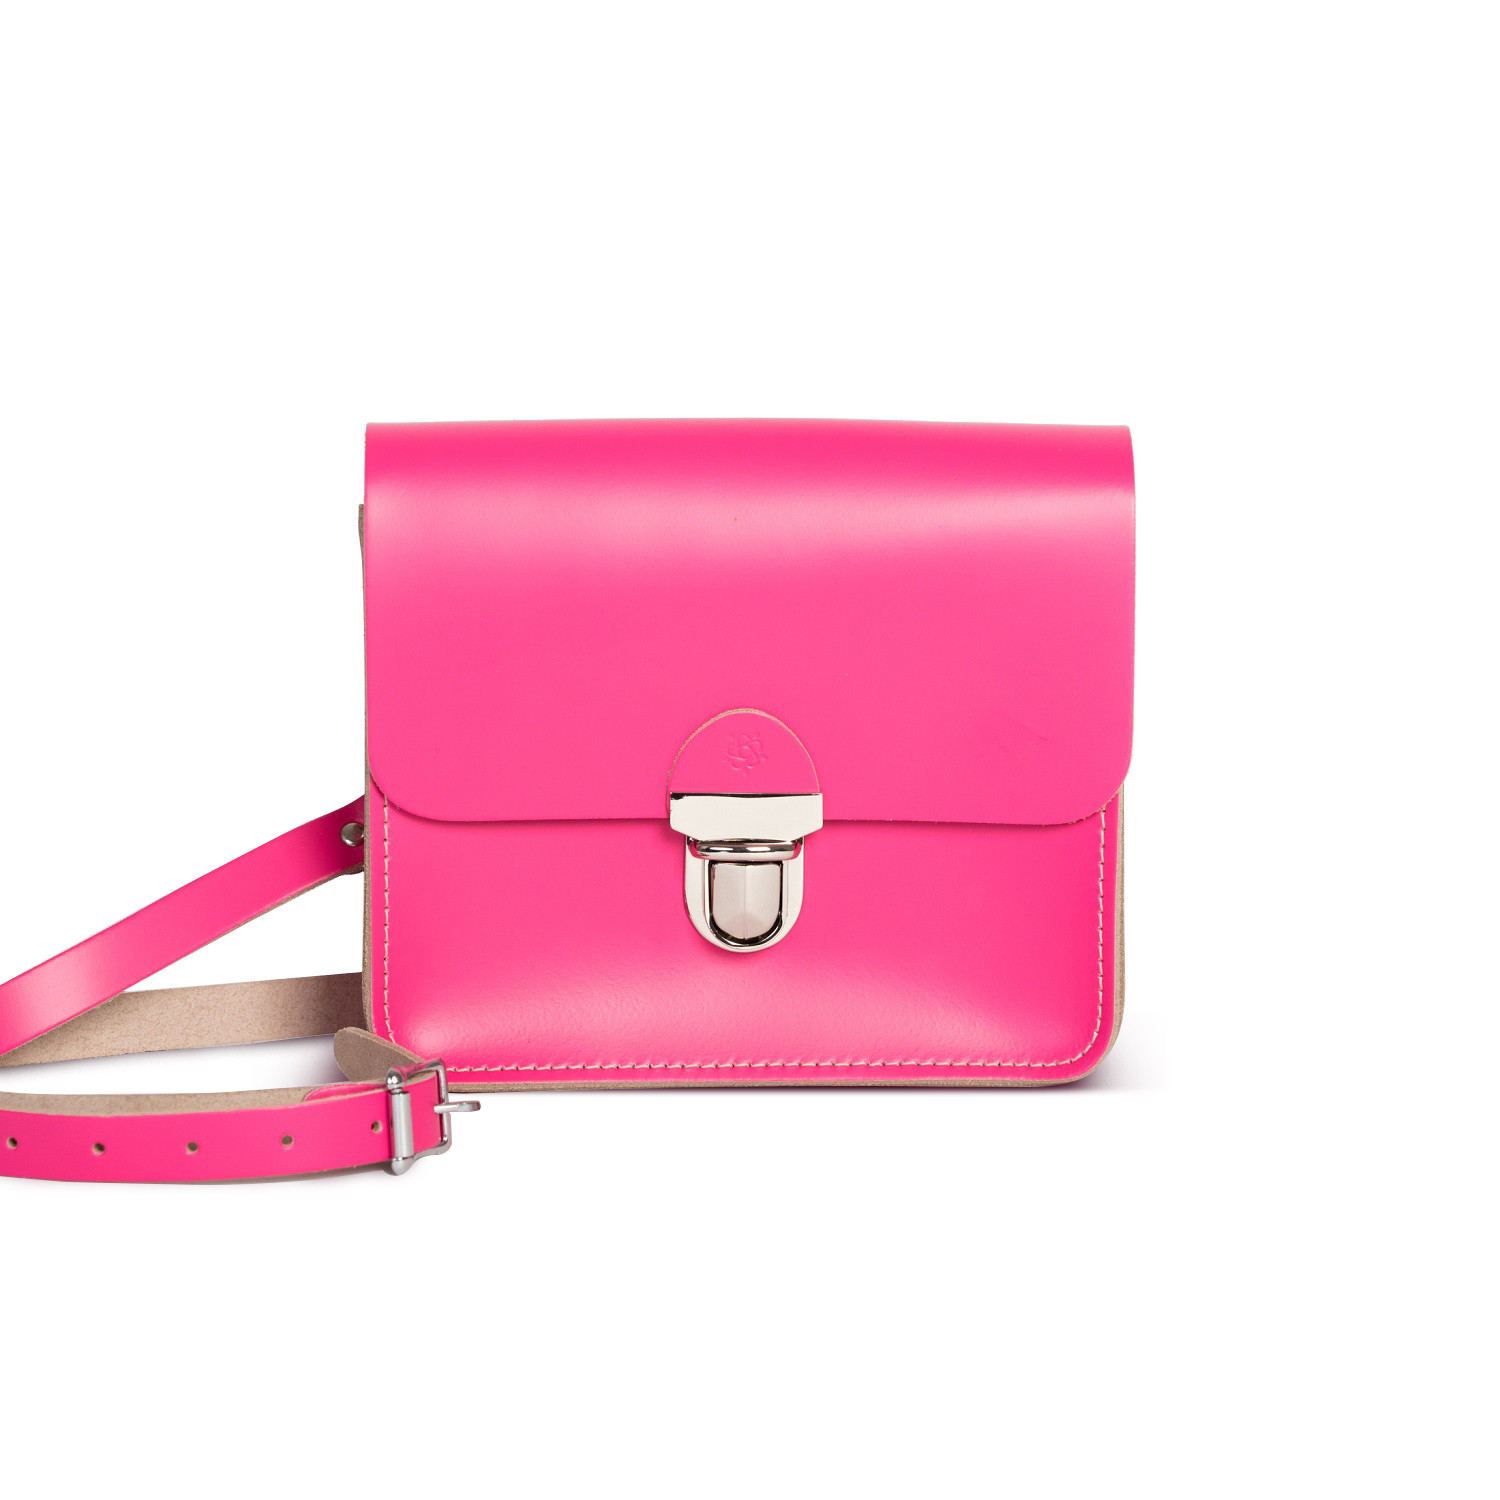 Sofia Premium Leather Crossbody Bag in Bright Pink